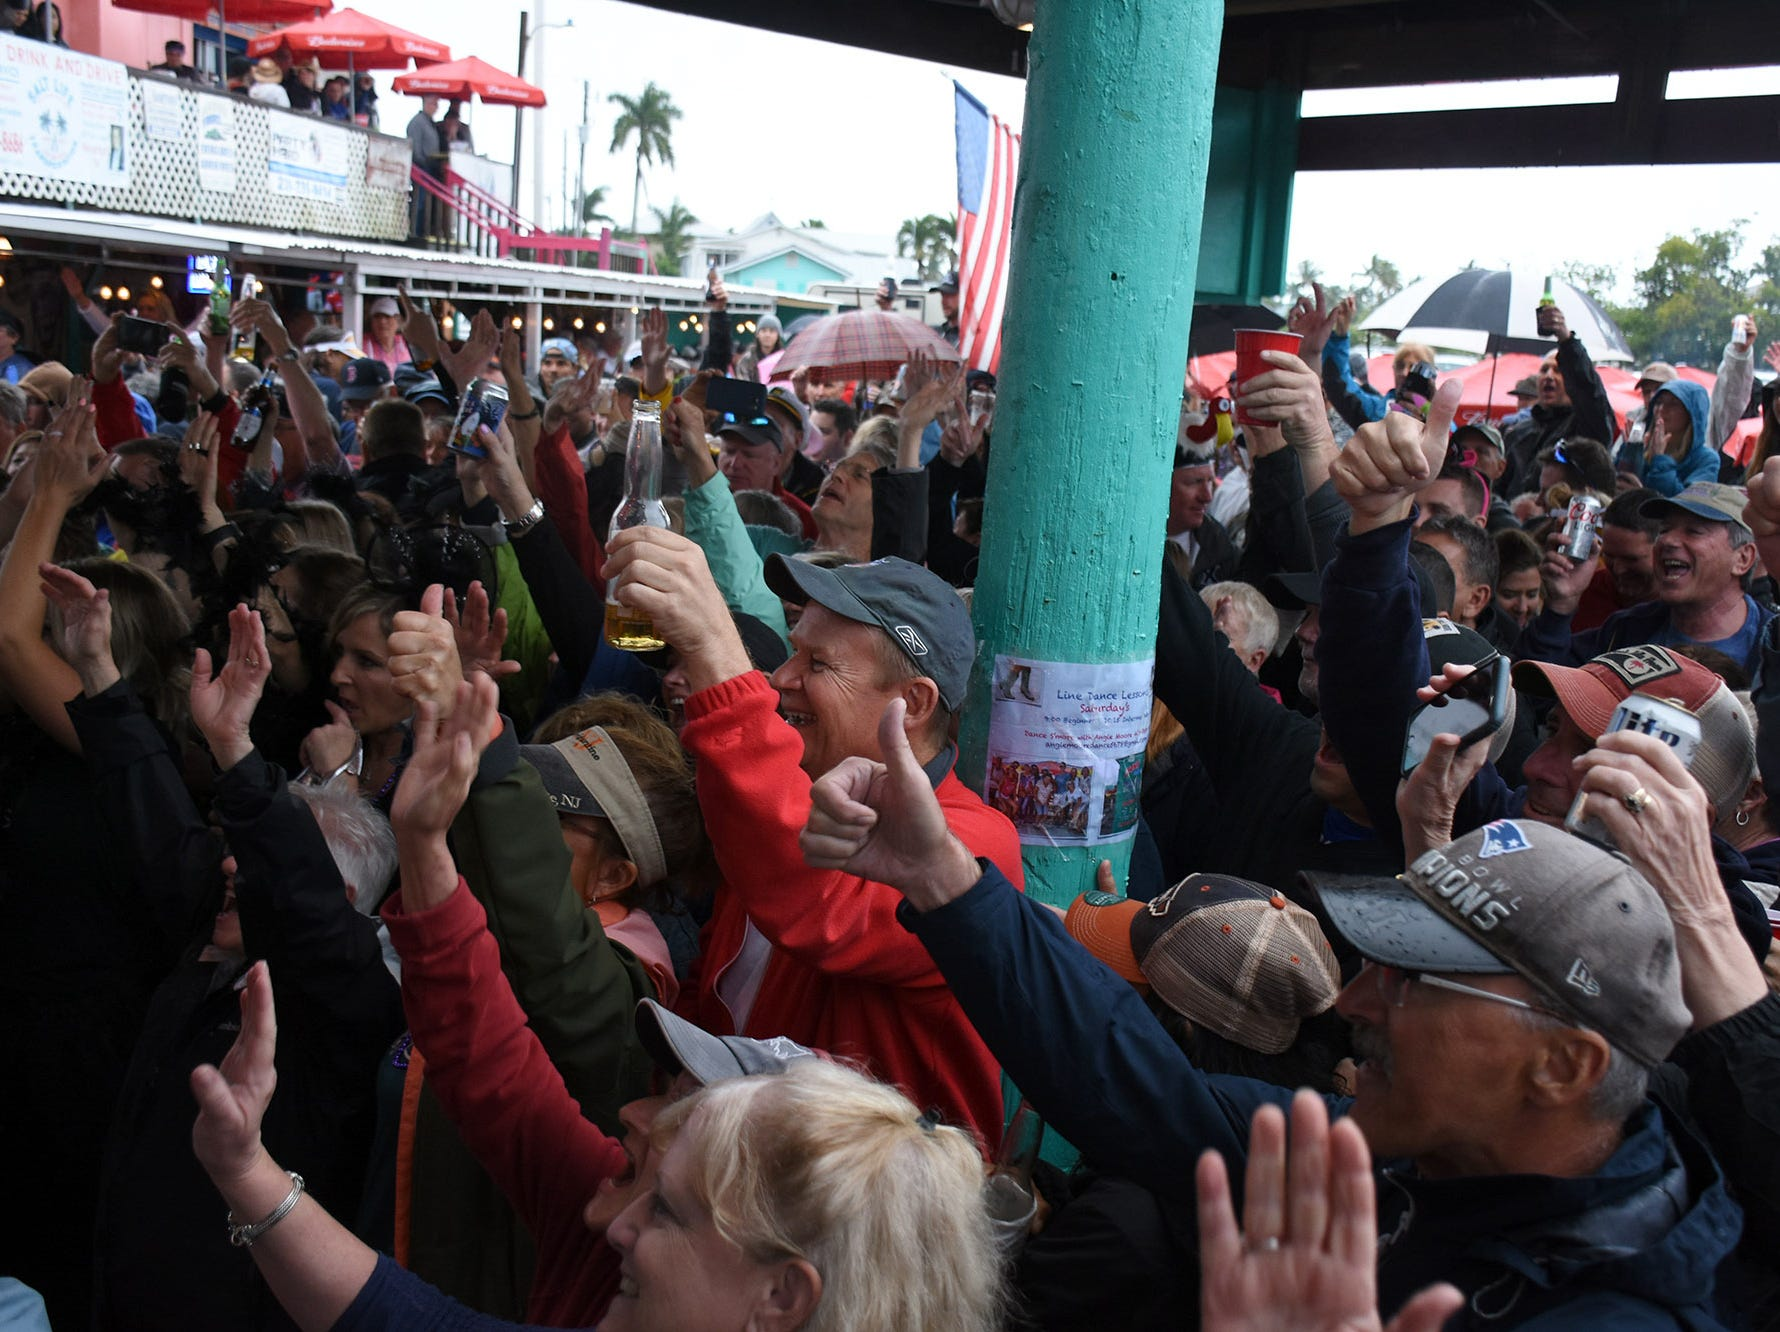 The crowd votes with their cheers. Stan's Idle Hour restaurant held The 35th annual Mullet Festival over the weekend, a rain and beer-soaked celebration.